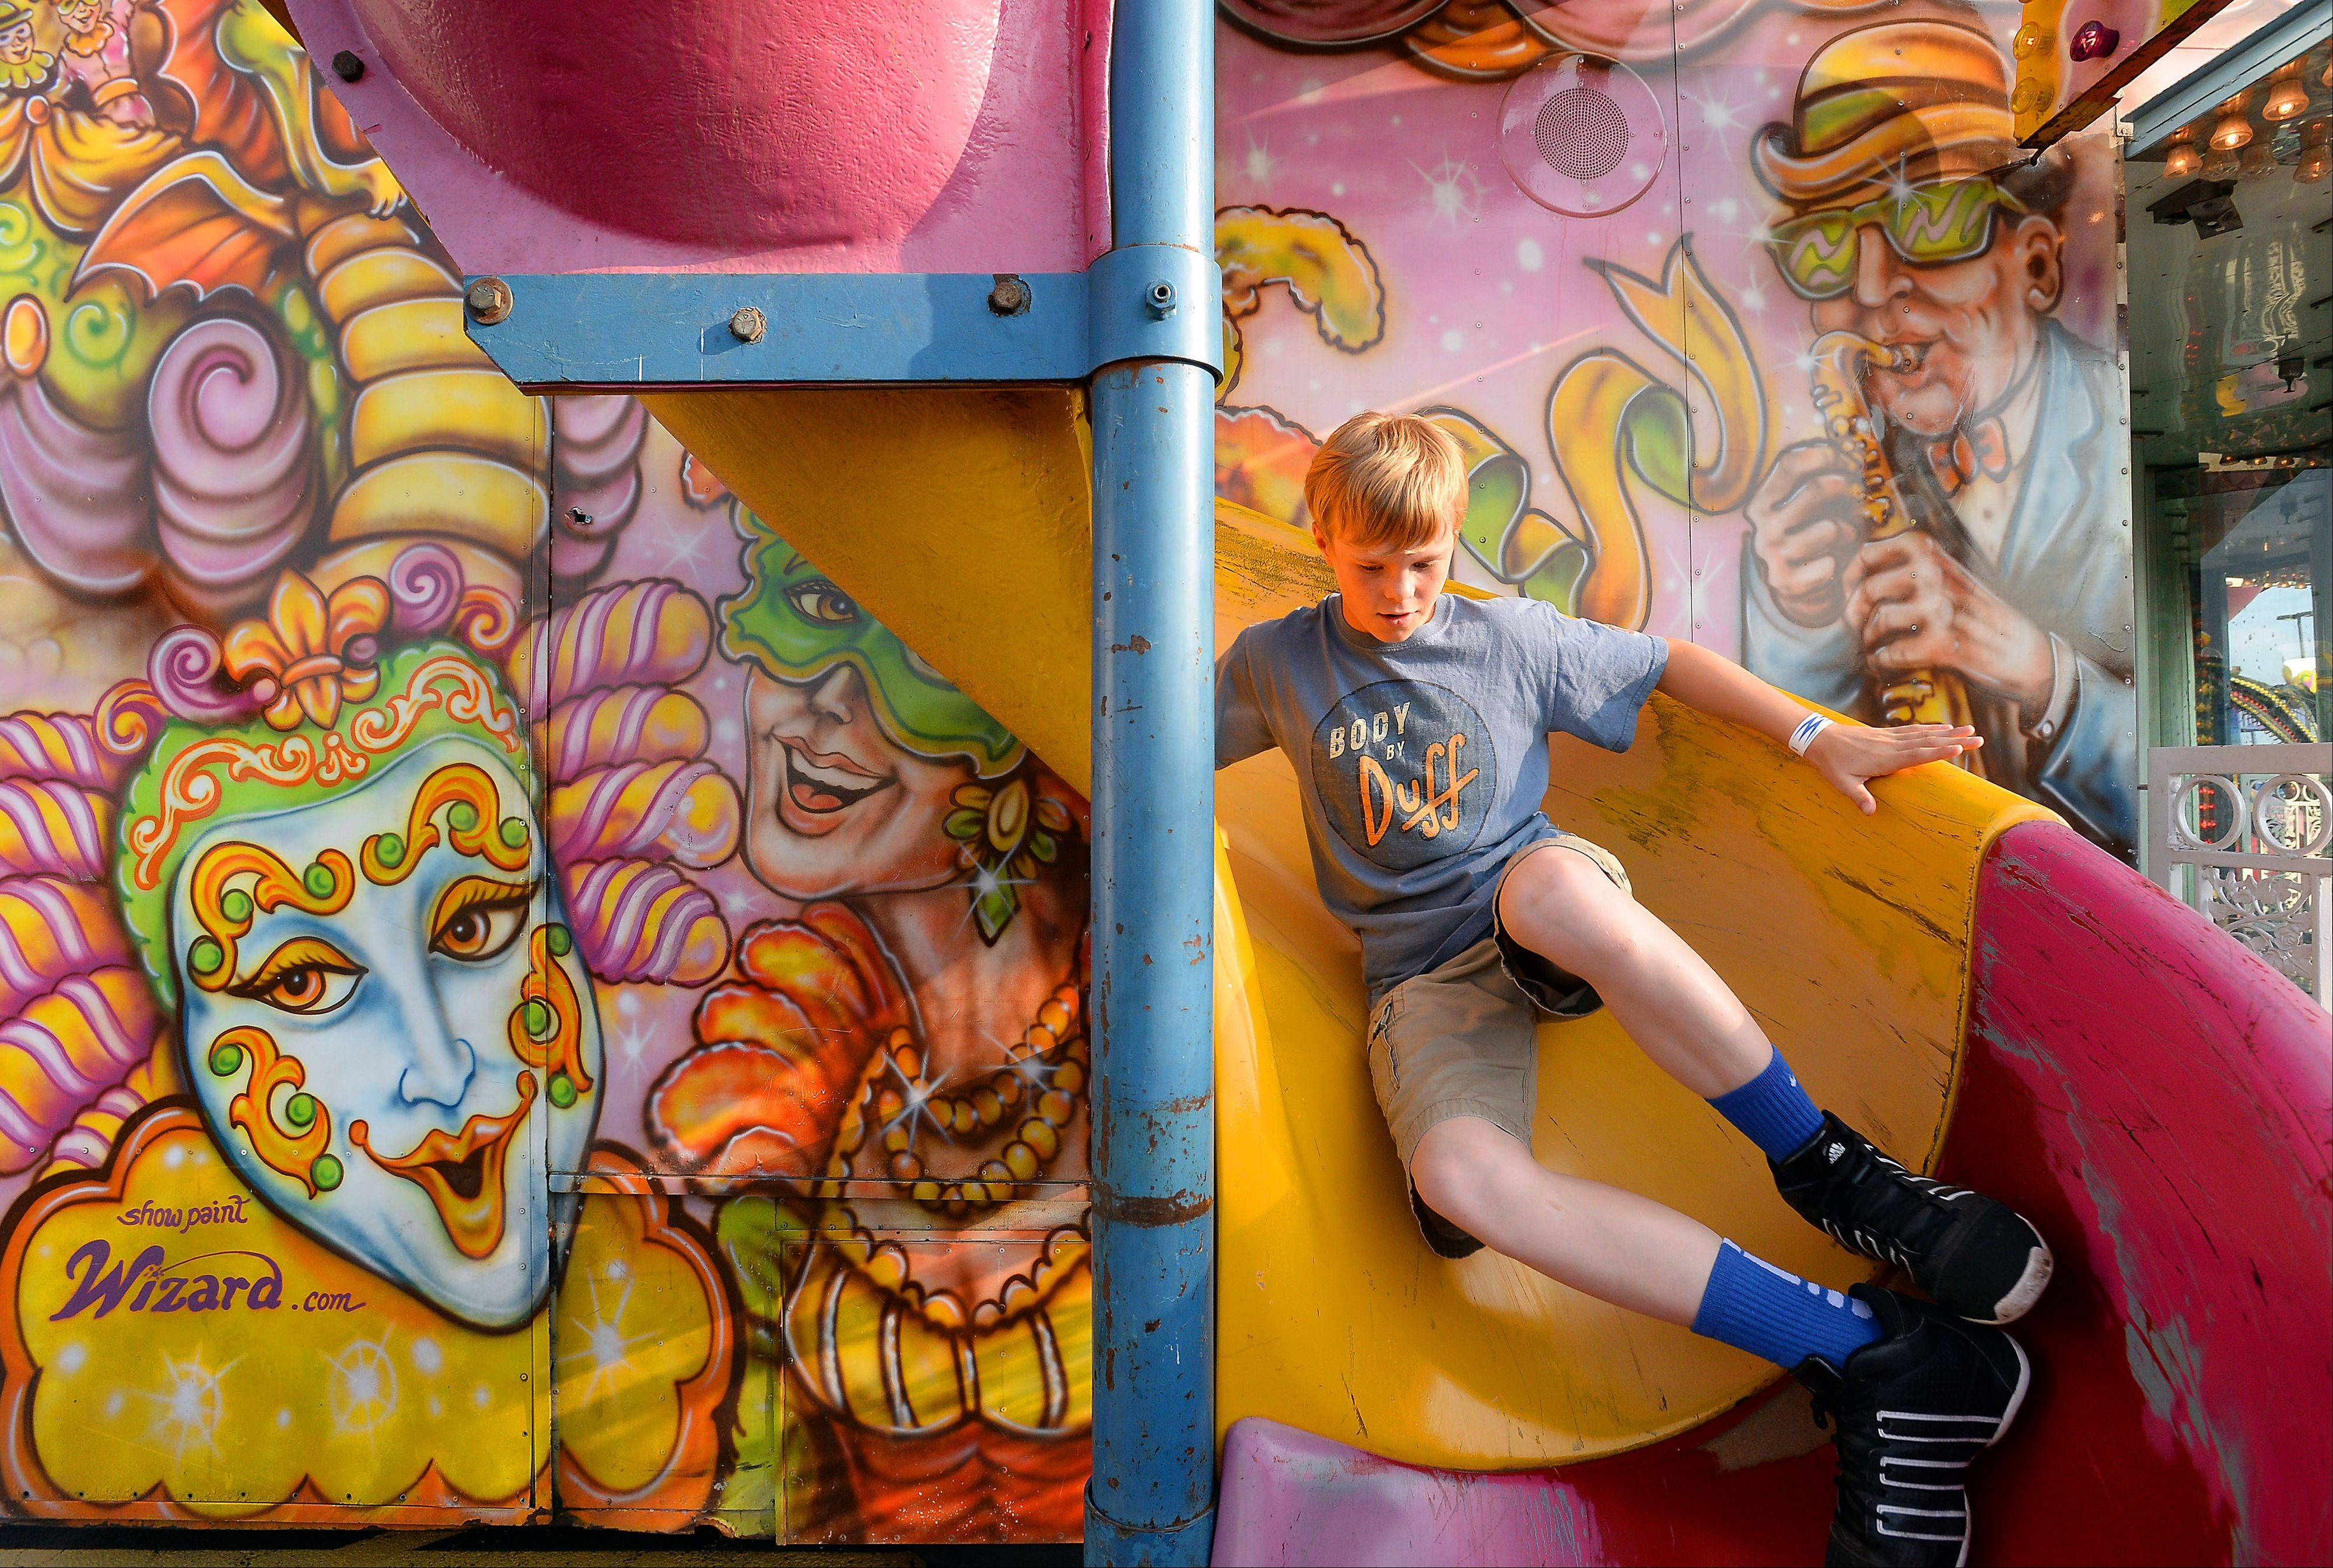 Jackson Reuter, 13, of Elgin takes a run on the Mardi Gras slide at the Northwest Fourth-Fest in Hoffman Estates on Friday.